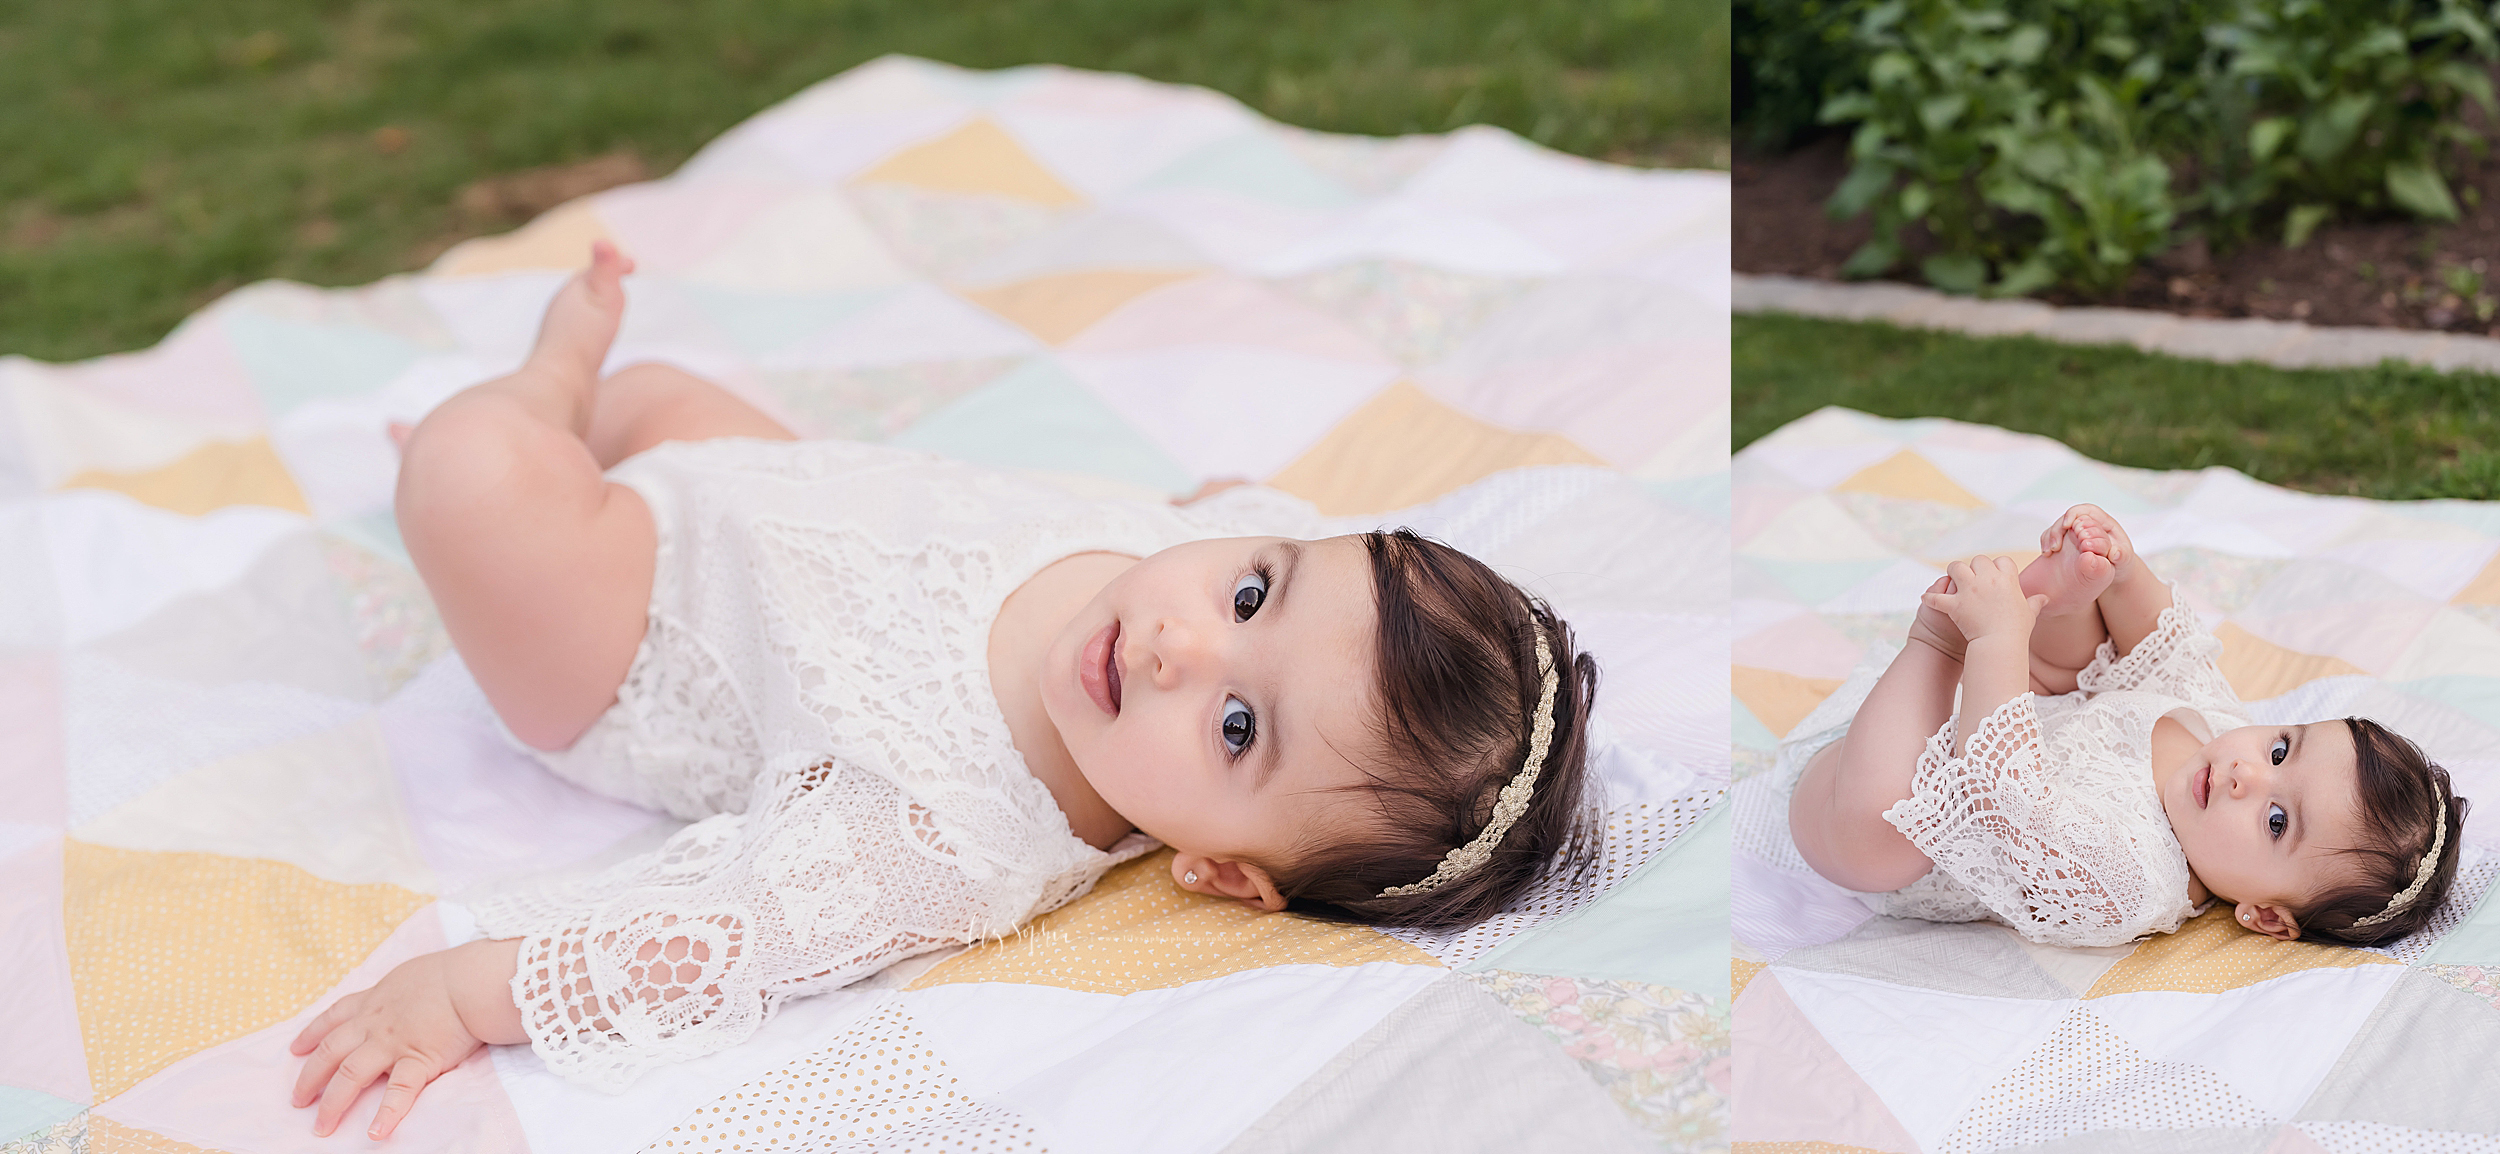 Split photo of a happy eight month old baby girl as she lays on a quilt in a lace overlay onesie and a lace headband and plays with her bare toes at sunset in an Atlanta garden.